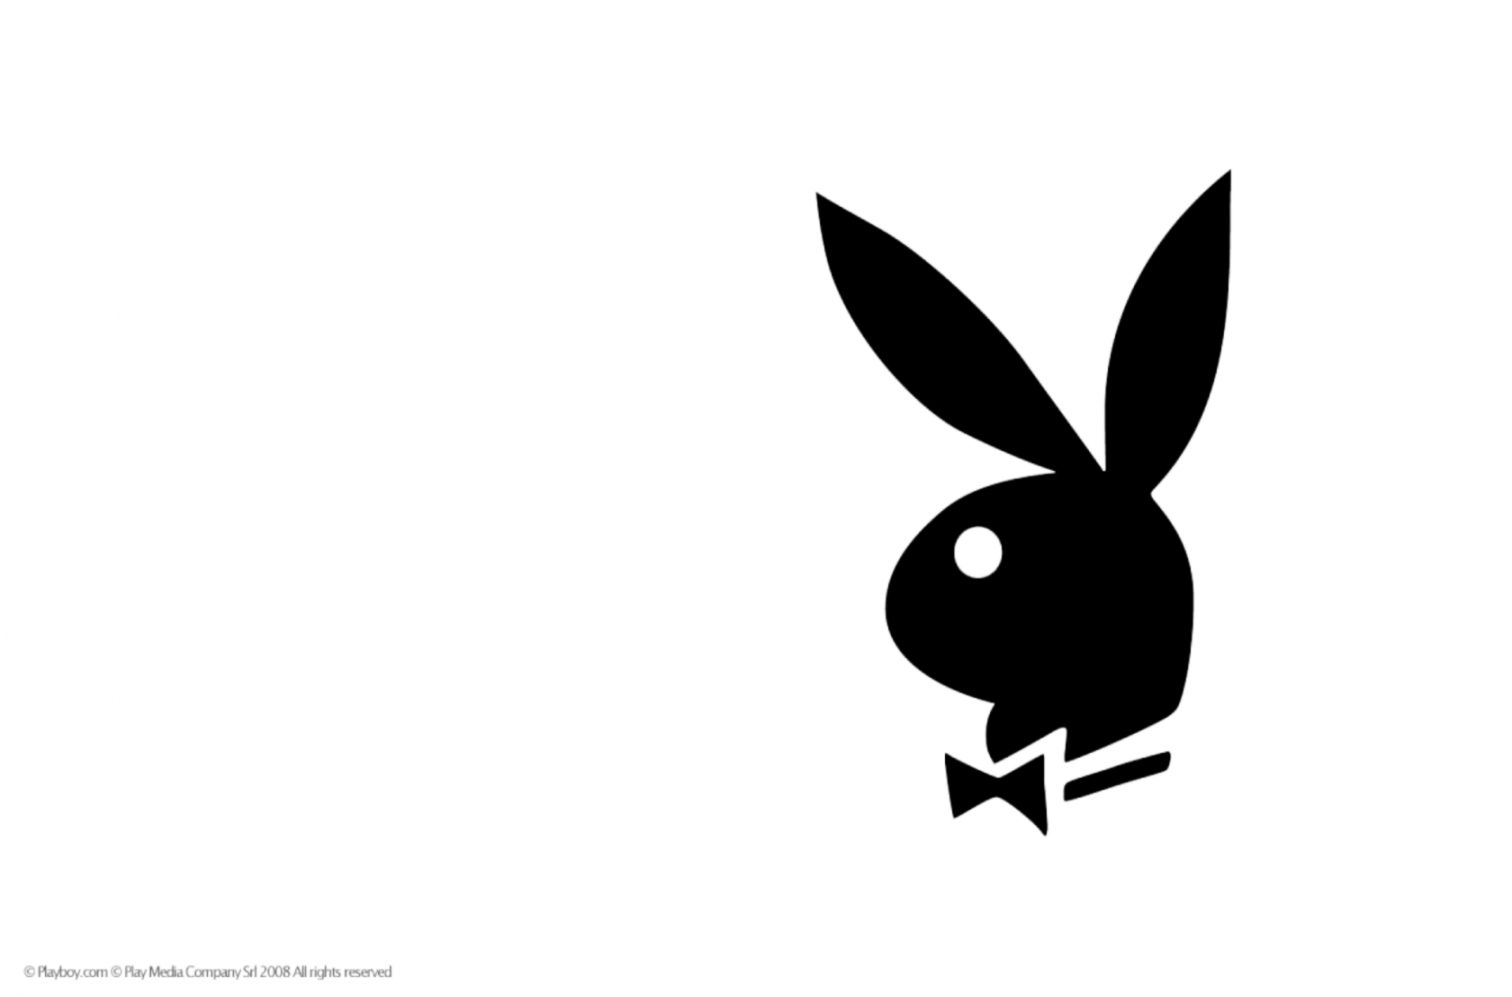 Official copyrighted playboy logo hd wallpaper with plain white